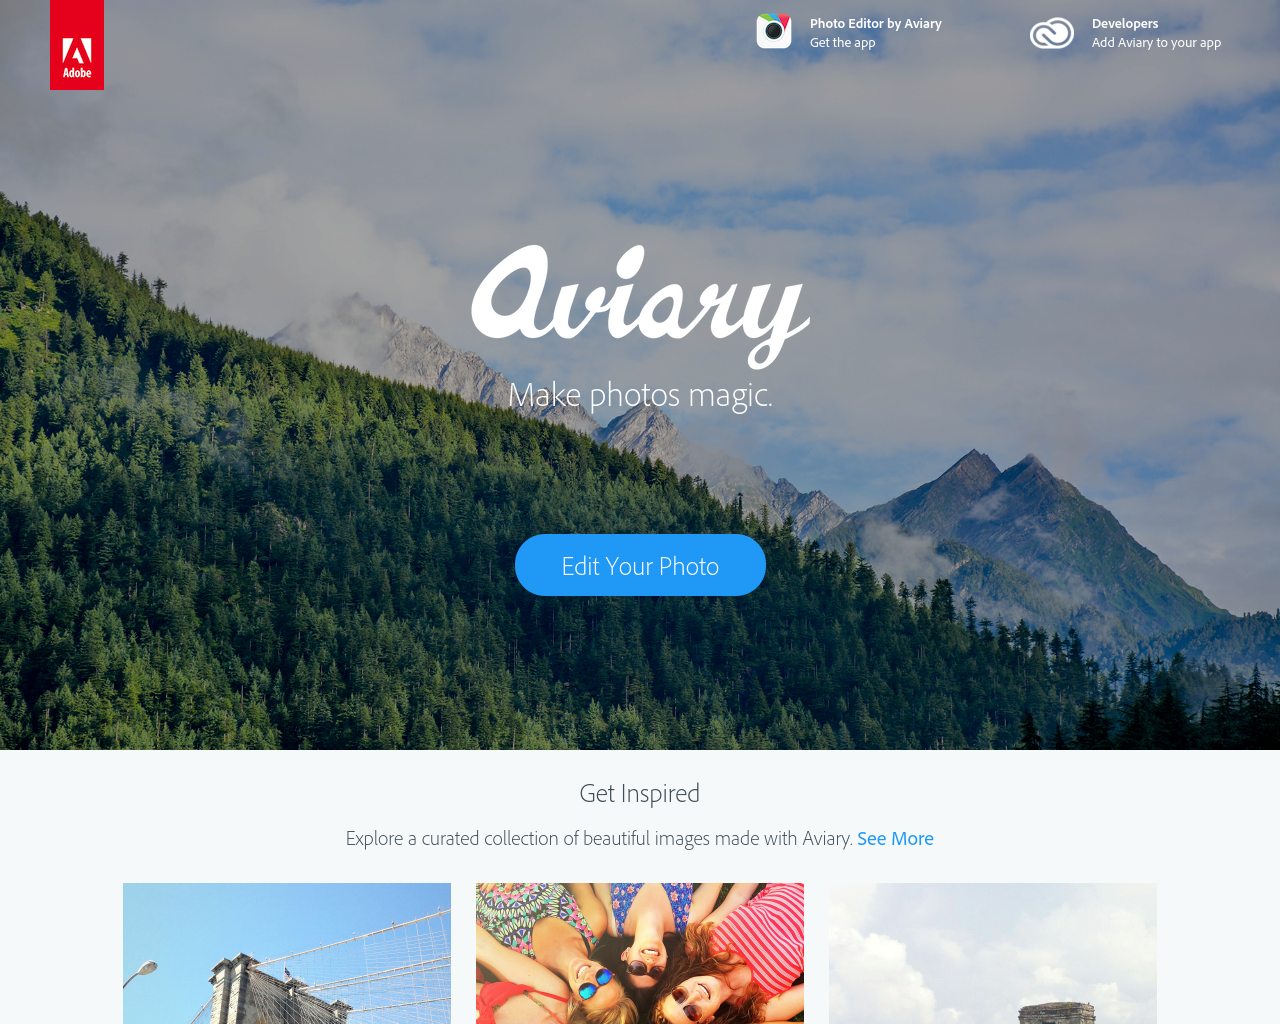 Aviary-Advertising-Reviews-Pricing